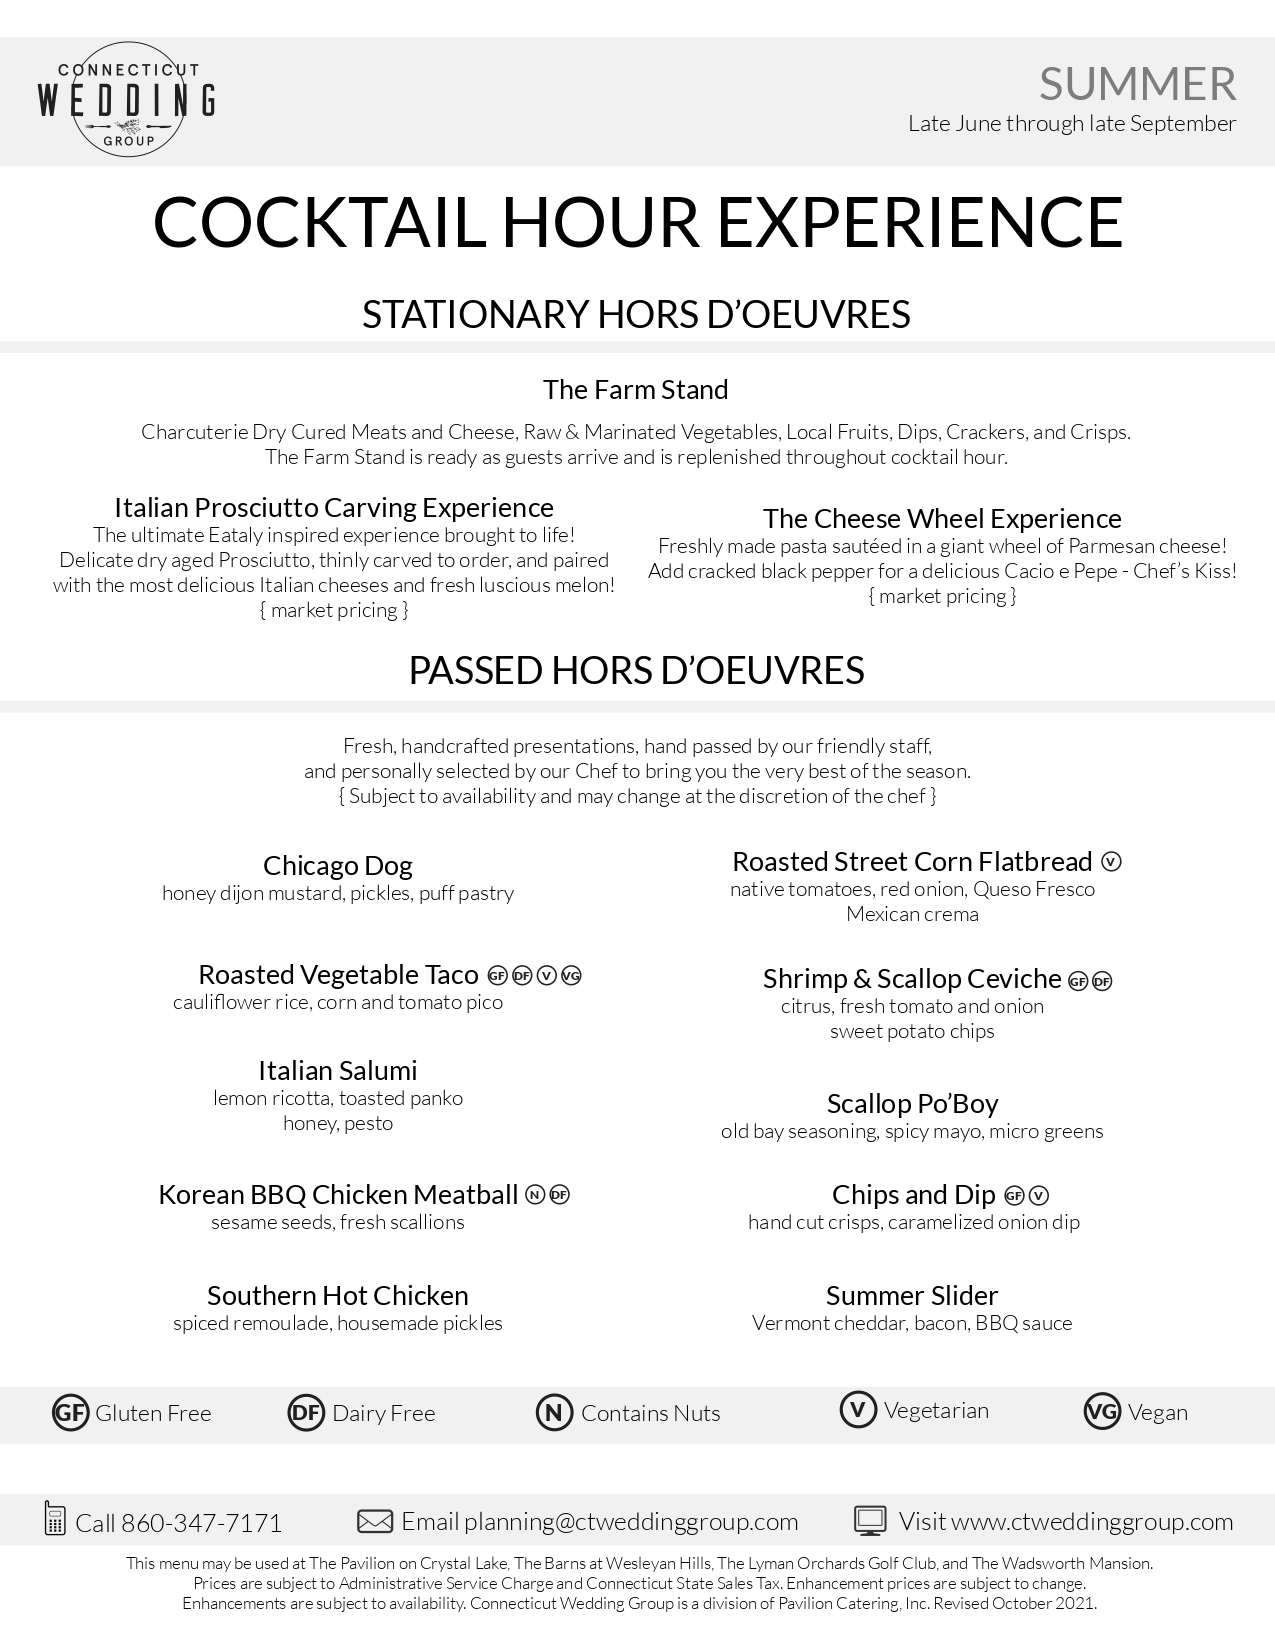 Summer-Cocktail-Hour-Culinary-Experiences-2022_NEW_page-0001